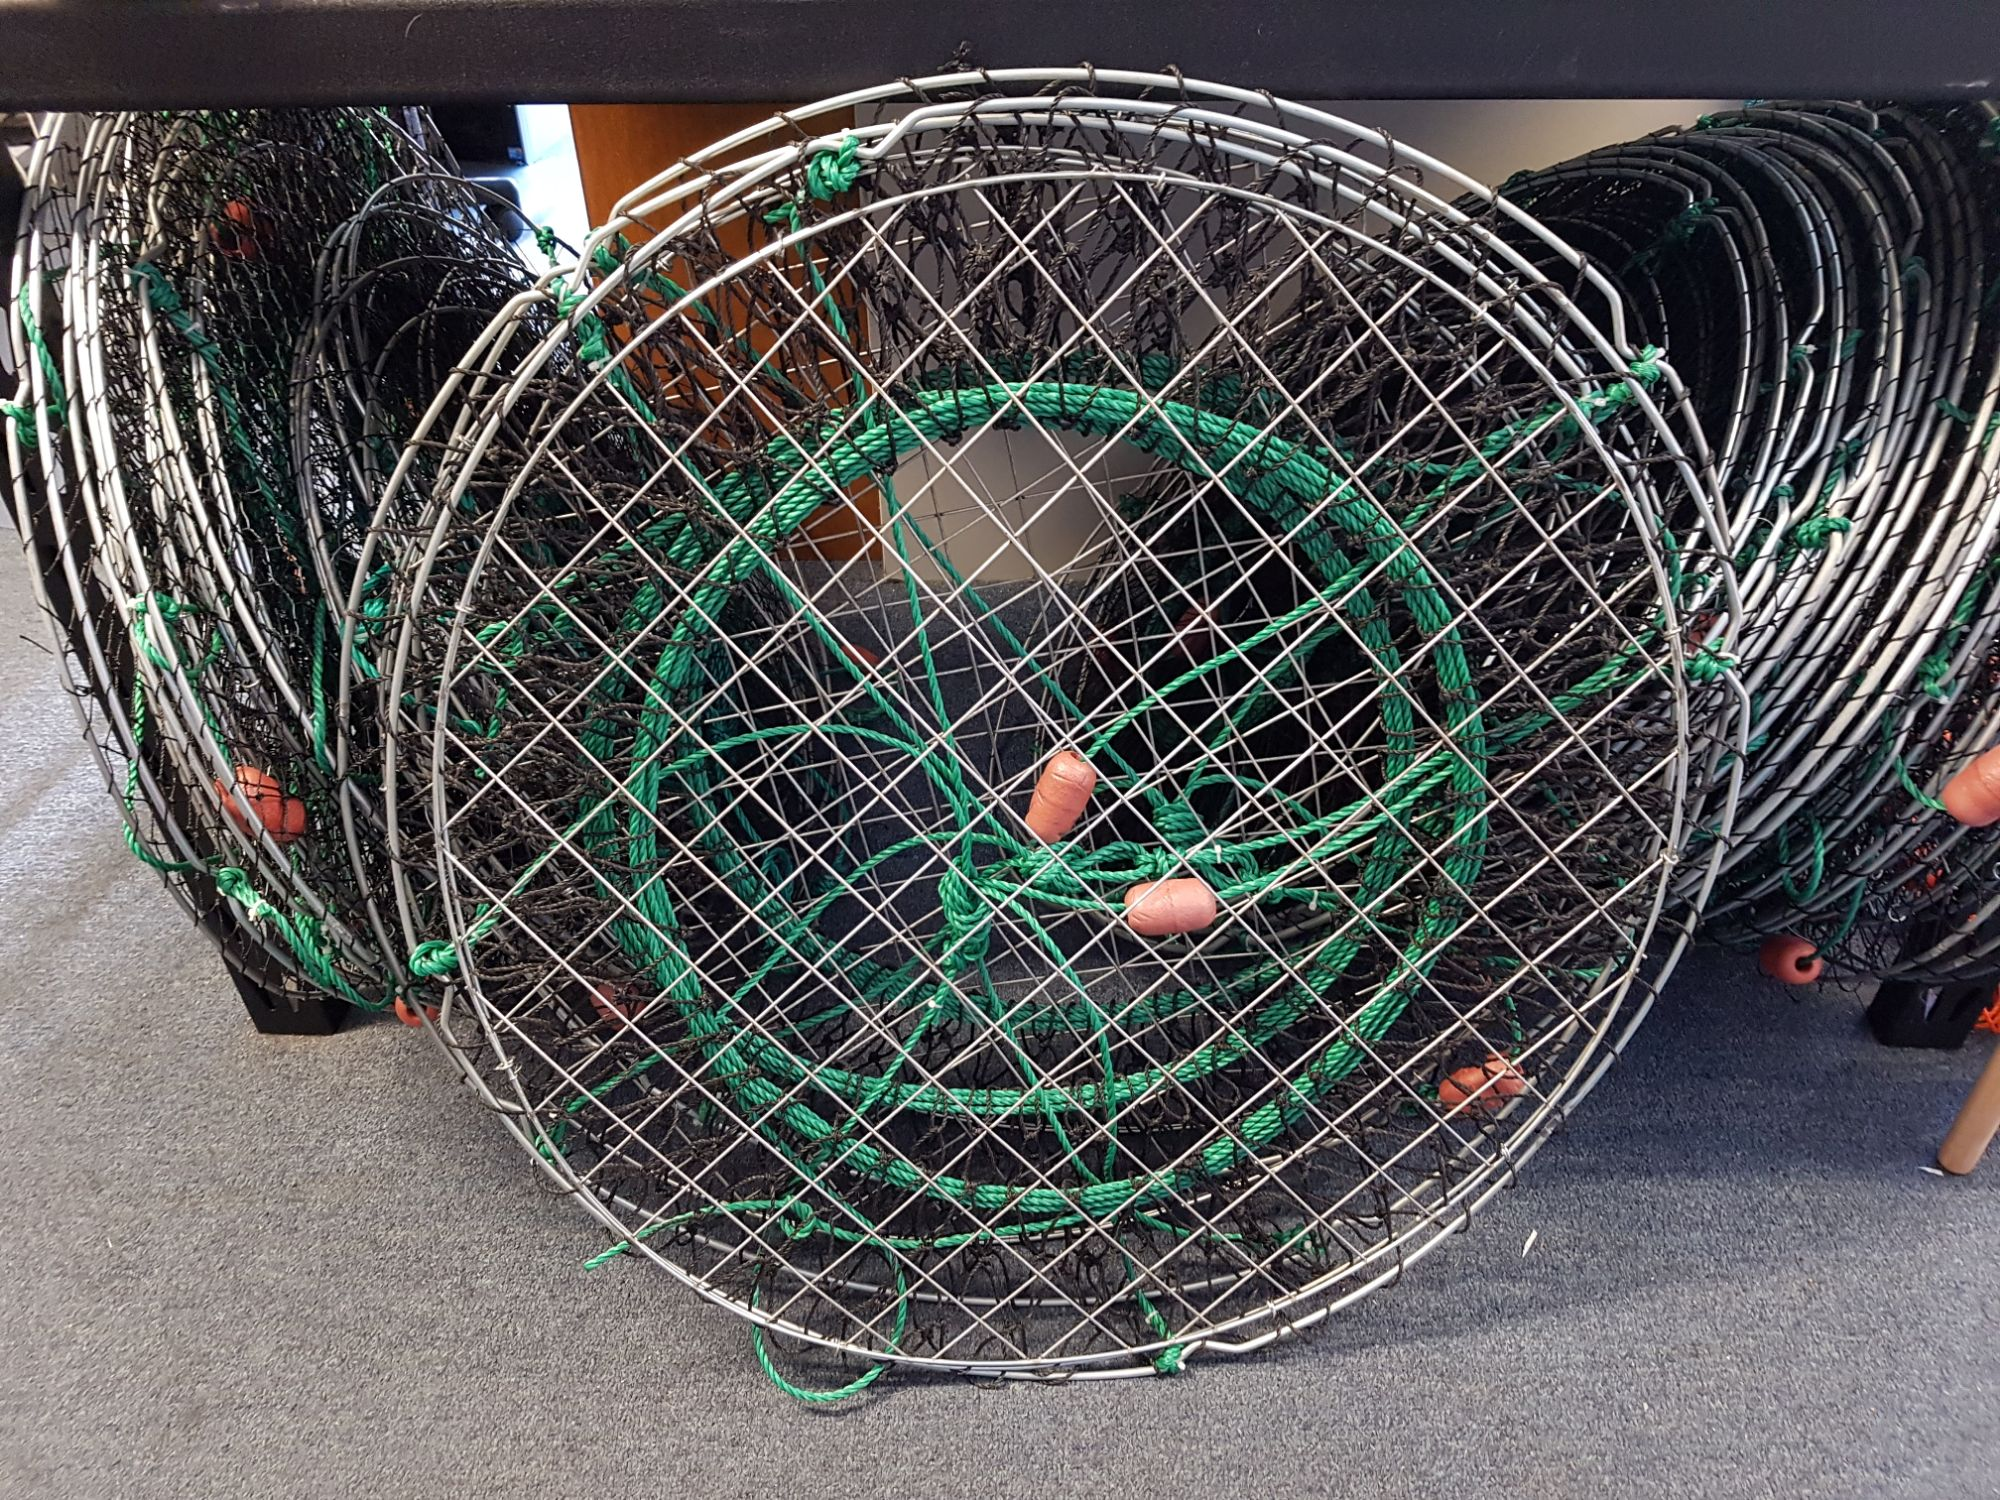 Crabbing Equipment  For Sale in Perth, Western Australia